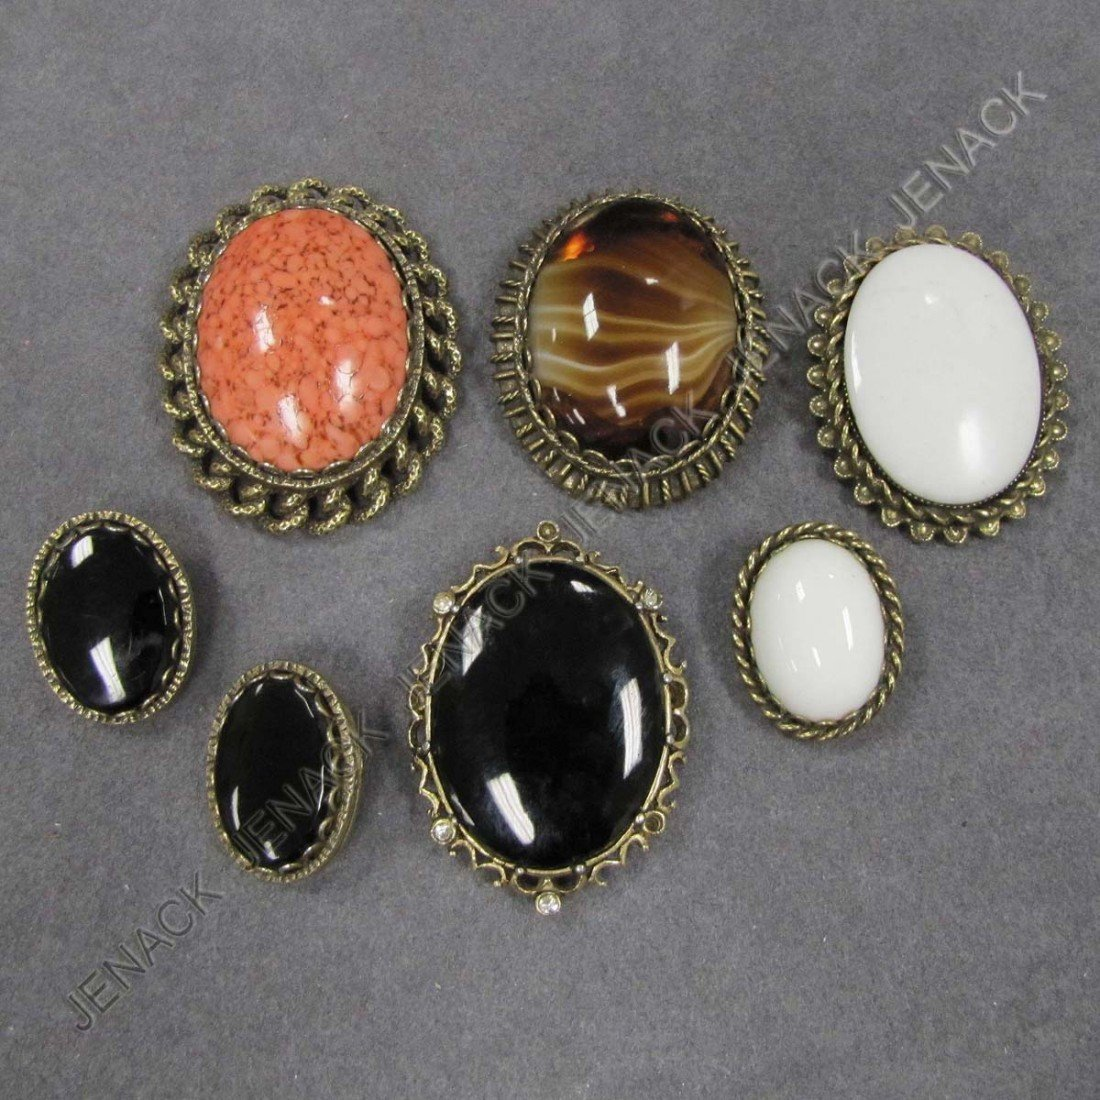 16: LOT (6) BROOCHES AND EARRINGS, SIGNED